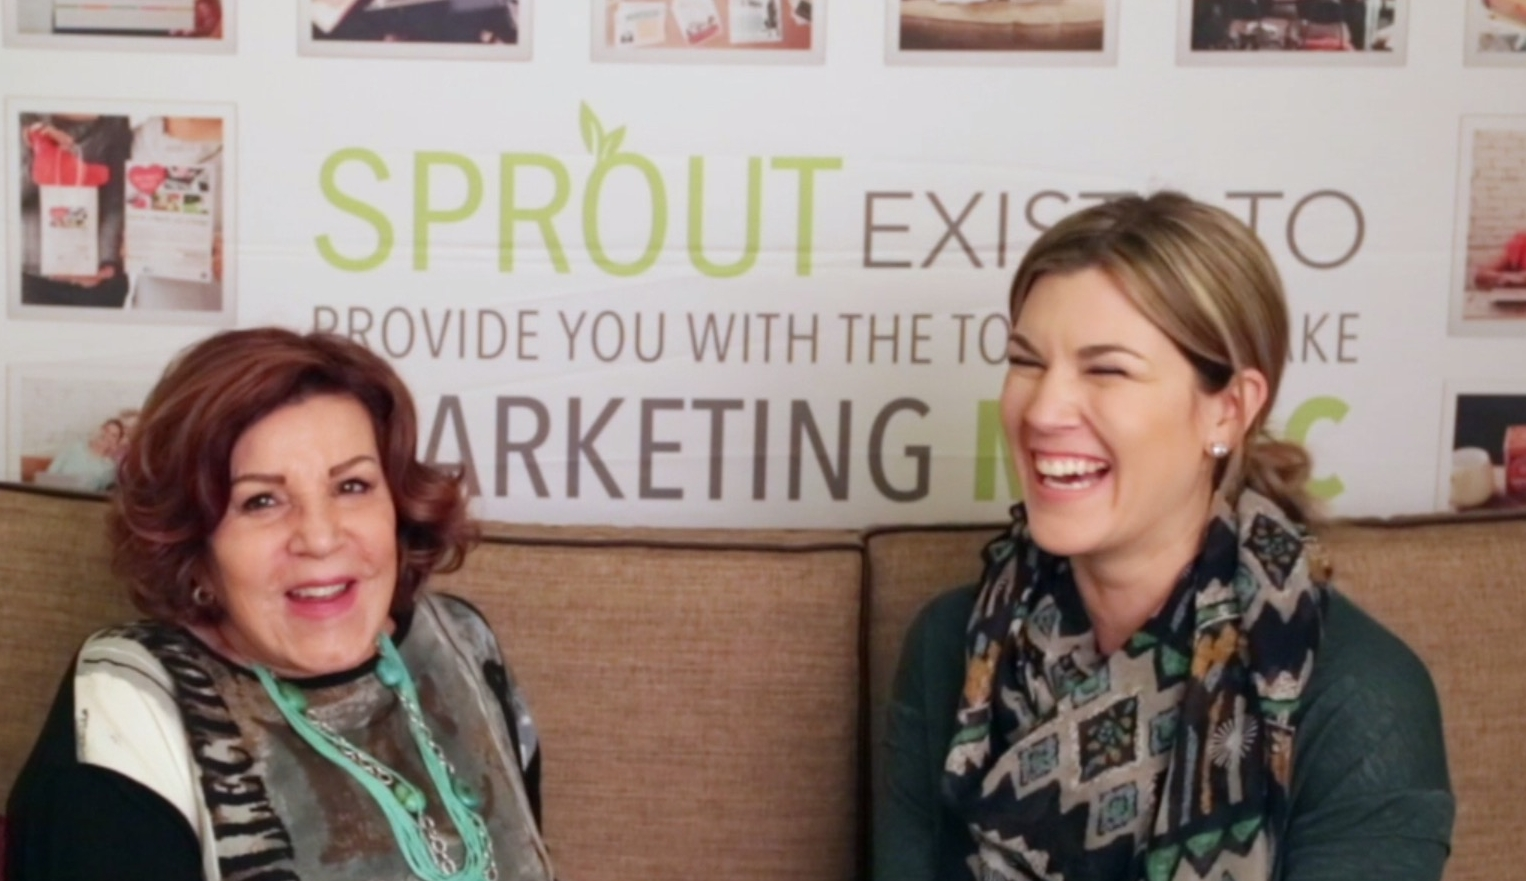 INDUSTRY CONFESSIONS - We had the absolute privilege of sitting down with Multifamily Industry L-E-G-E-N-D-S. We're talking about the trailblazers and the GREATS of our fun and fabulous, if not sometimes crazy, industry.Check them out below!